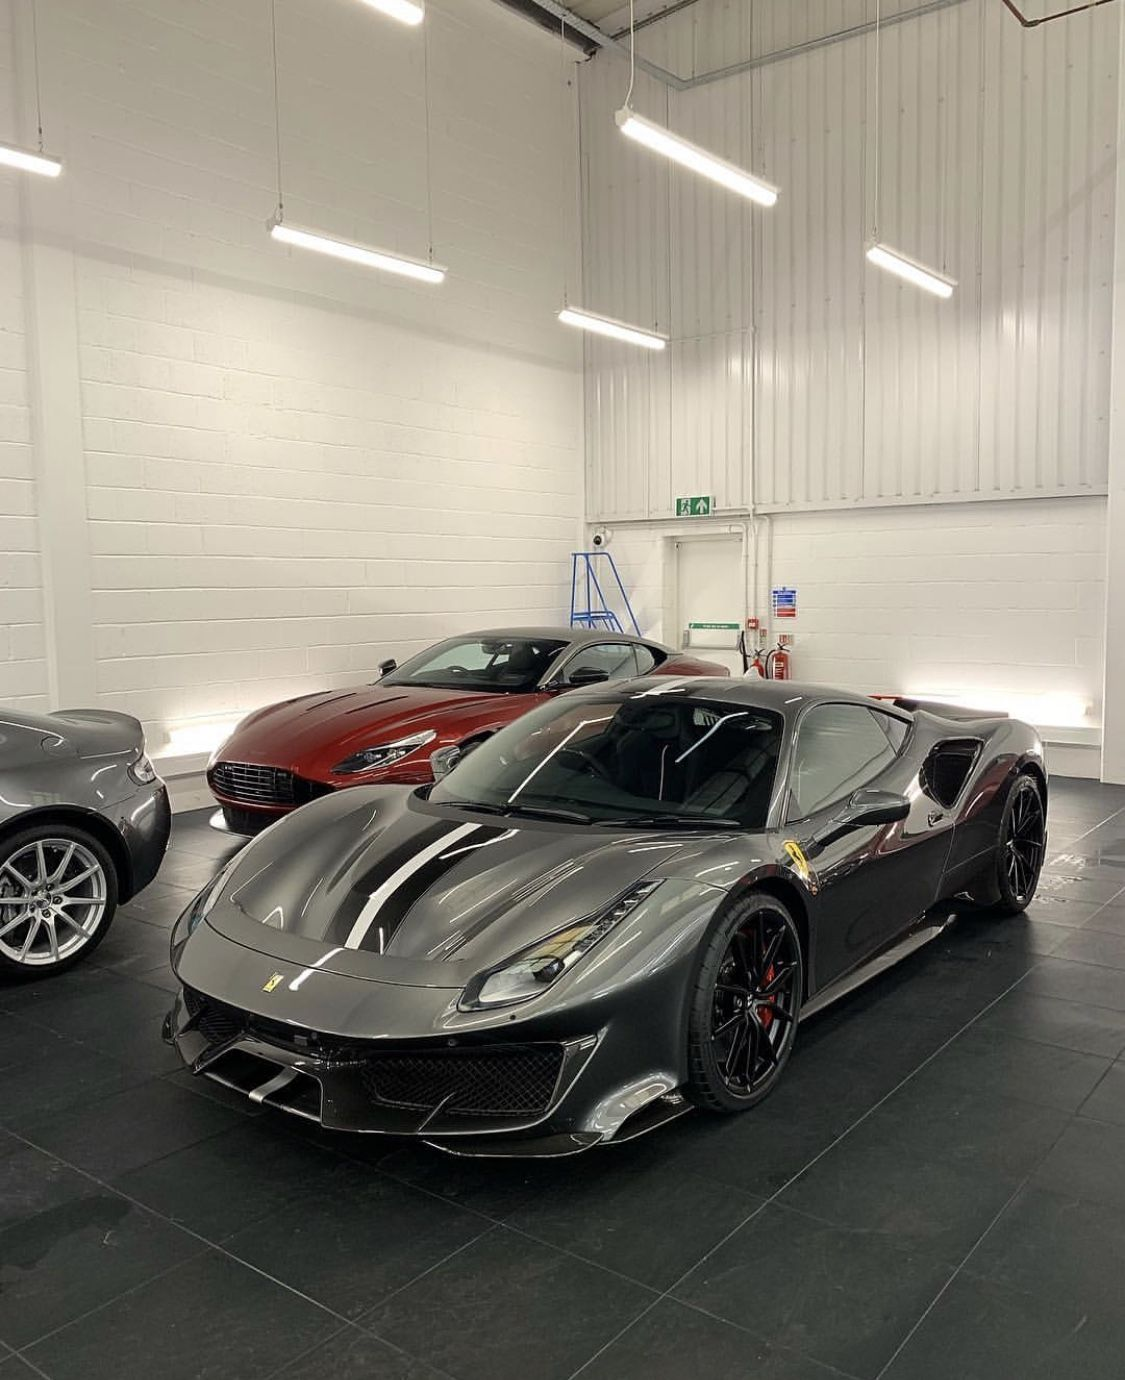 Pin By Luis On Ferrari Sports Cars Luxury New Luxury Cars Super Cars